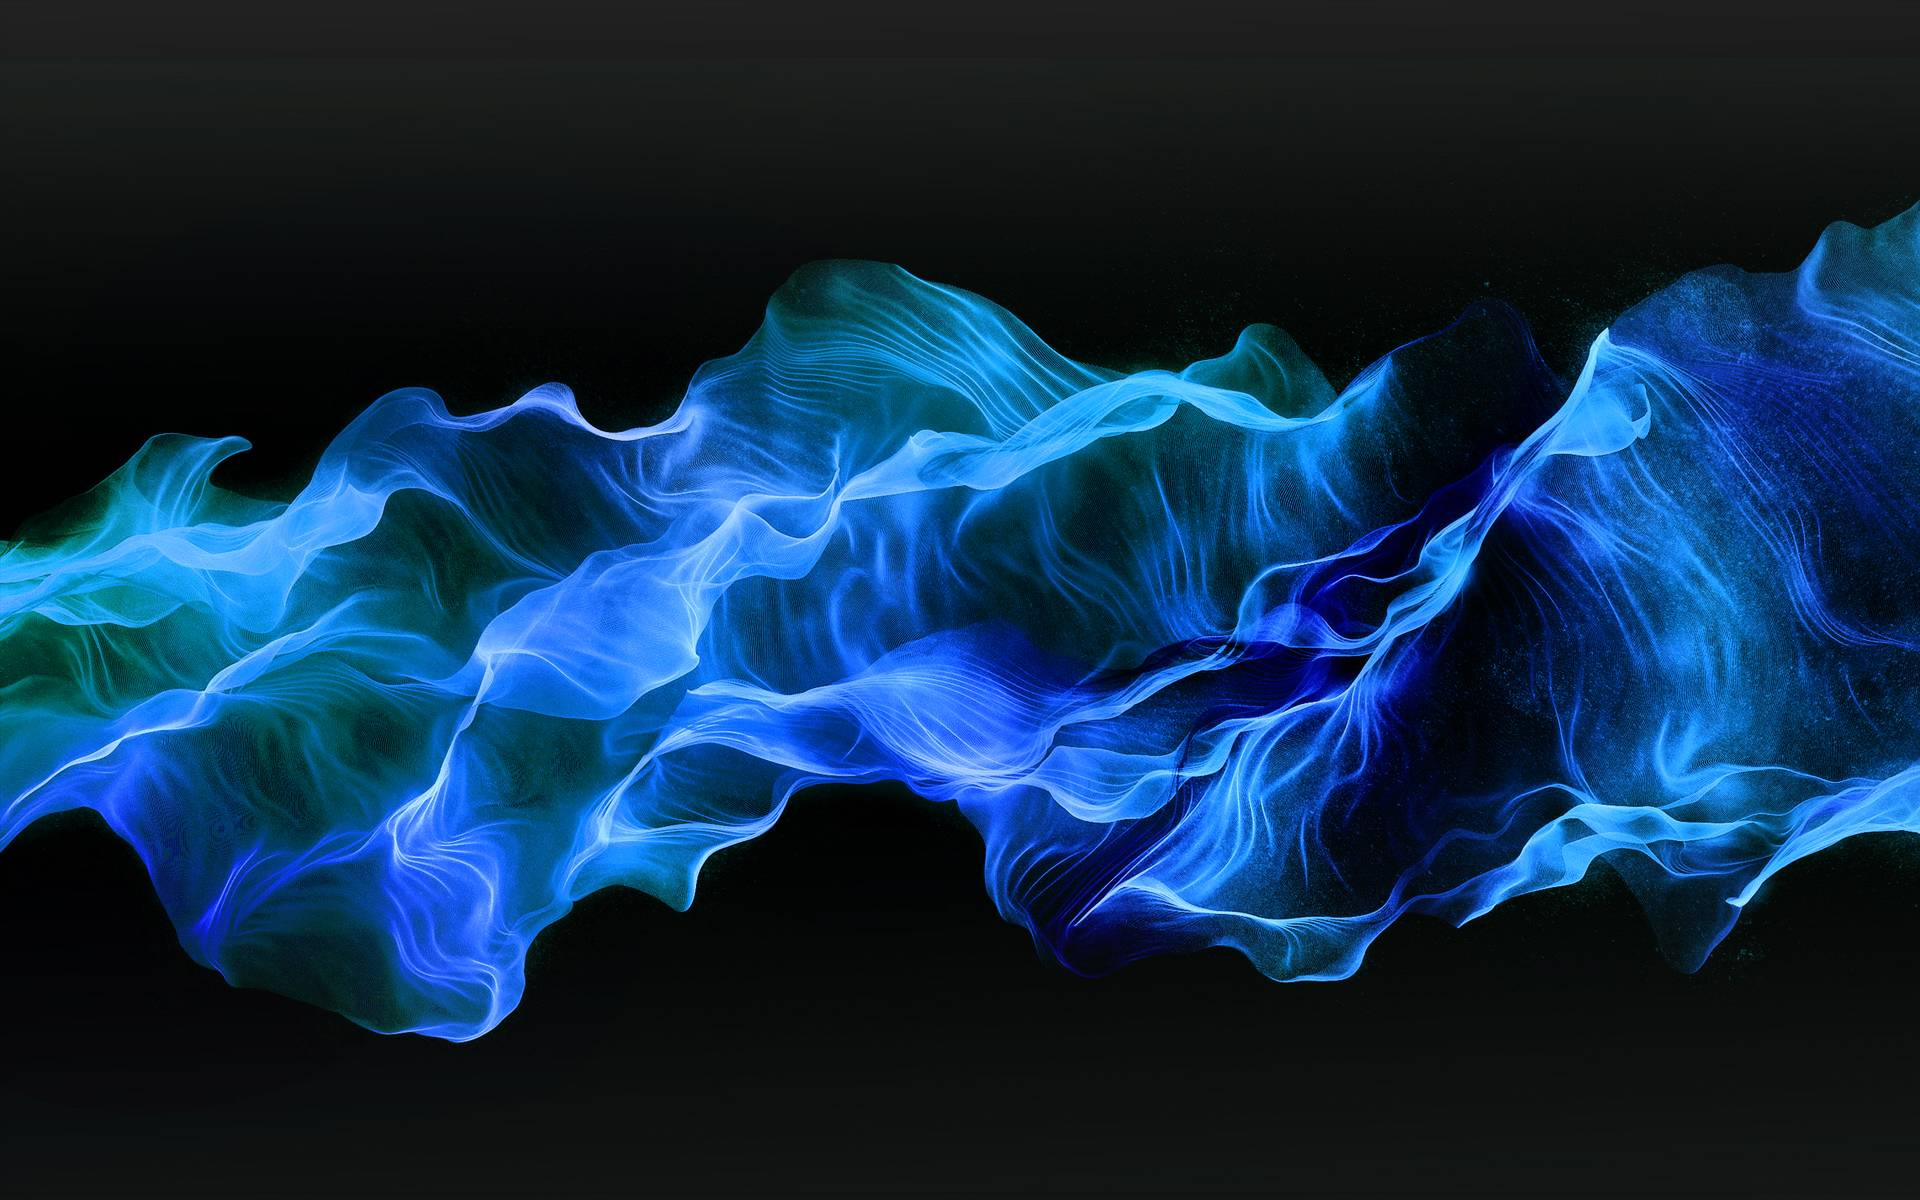 hd wallpapers desktop fire - photo #37